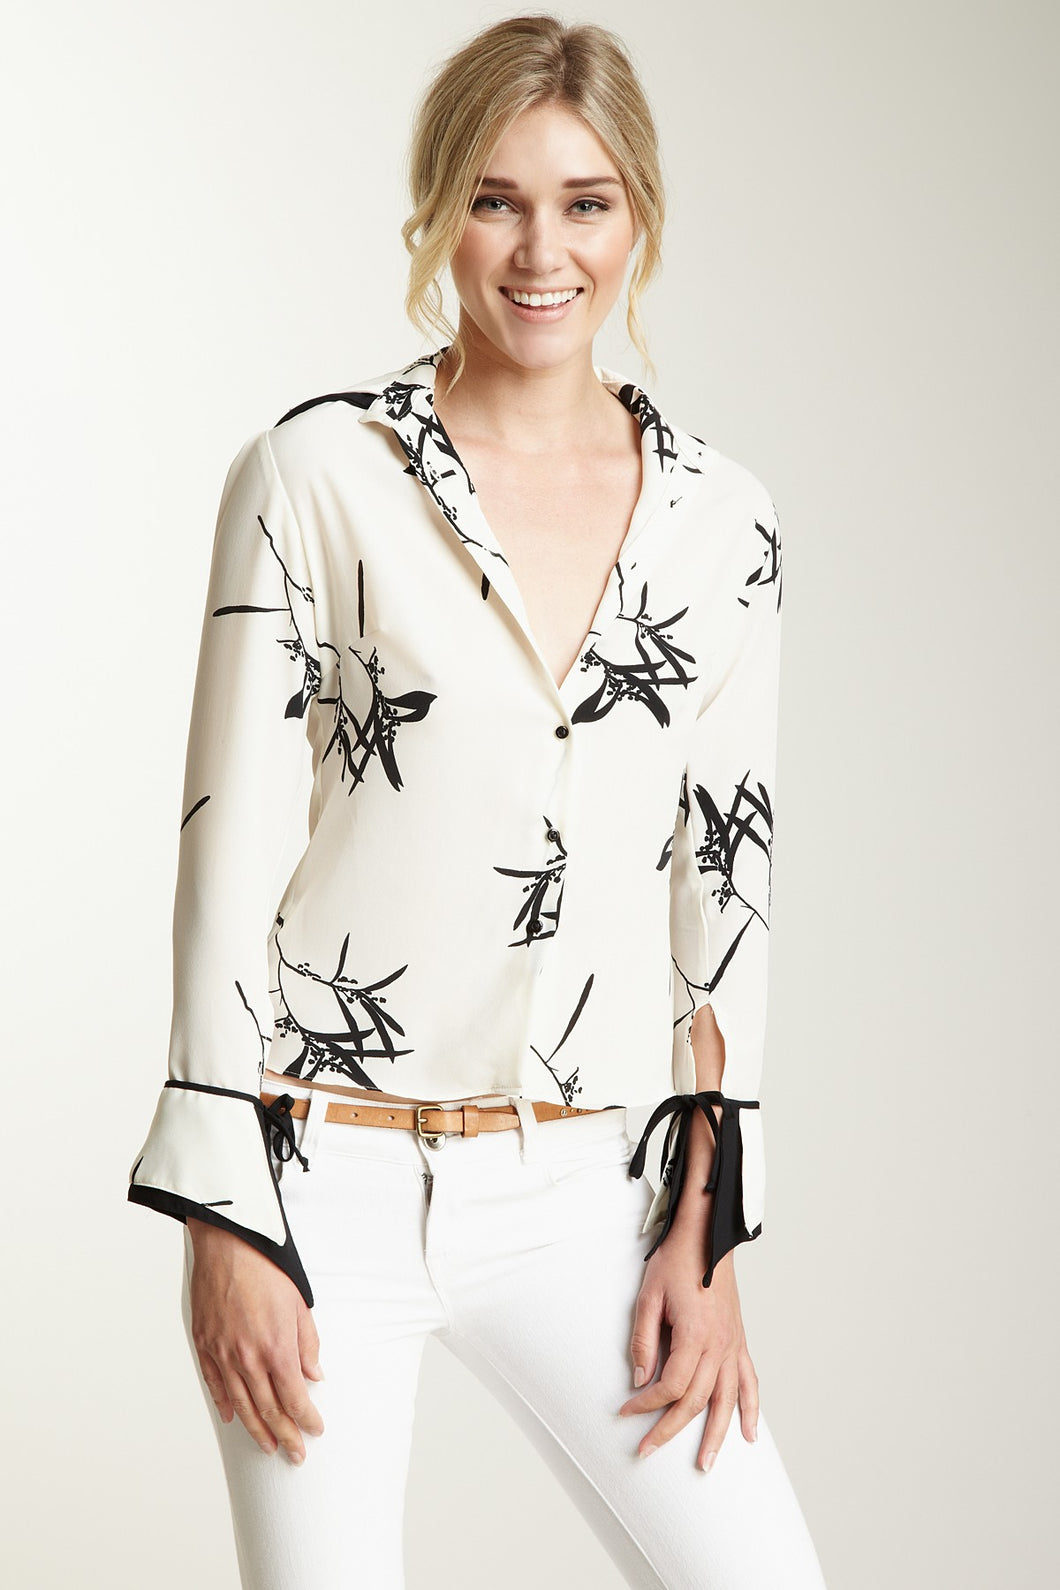 Double Cuff Shirt - Ivory / Black Bamboo Print